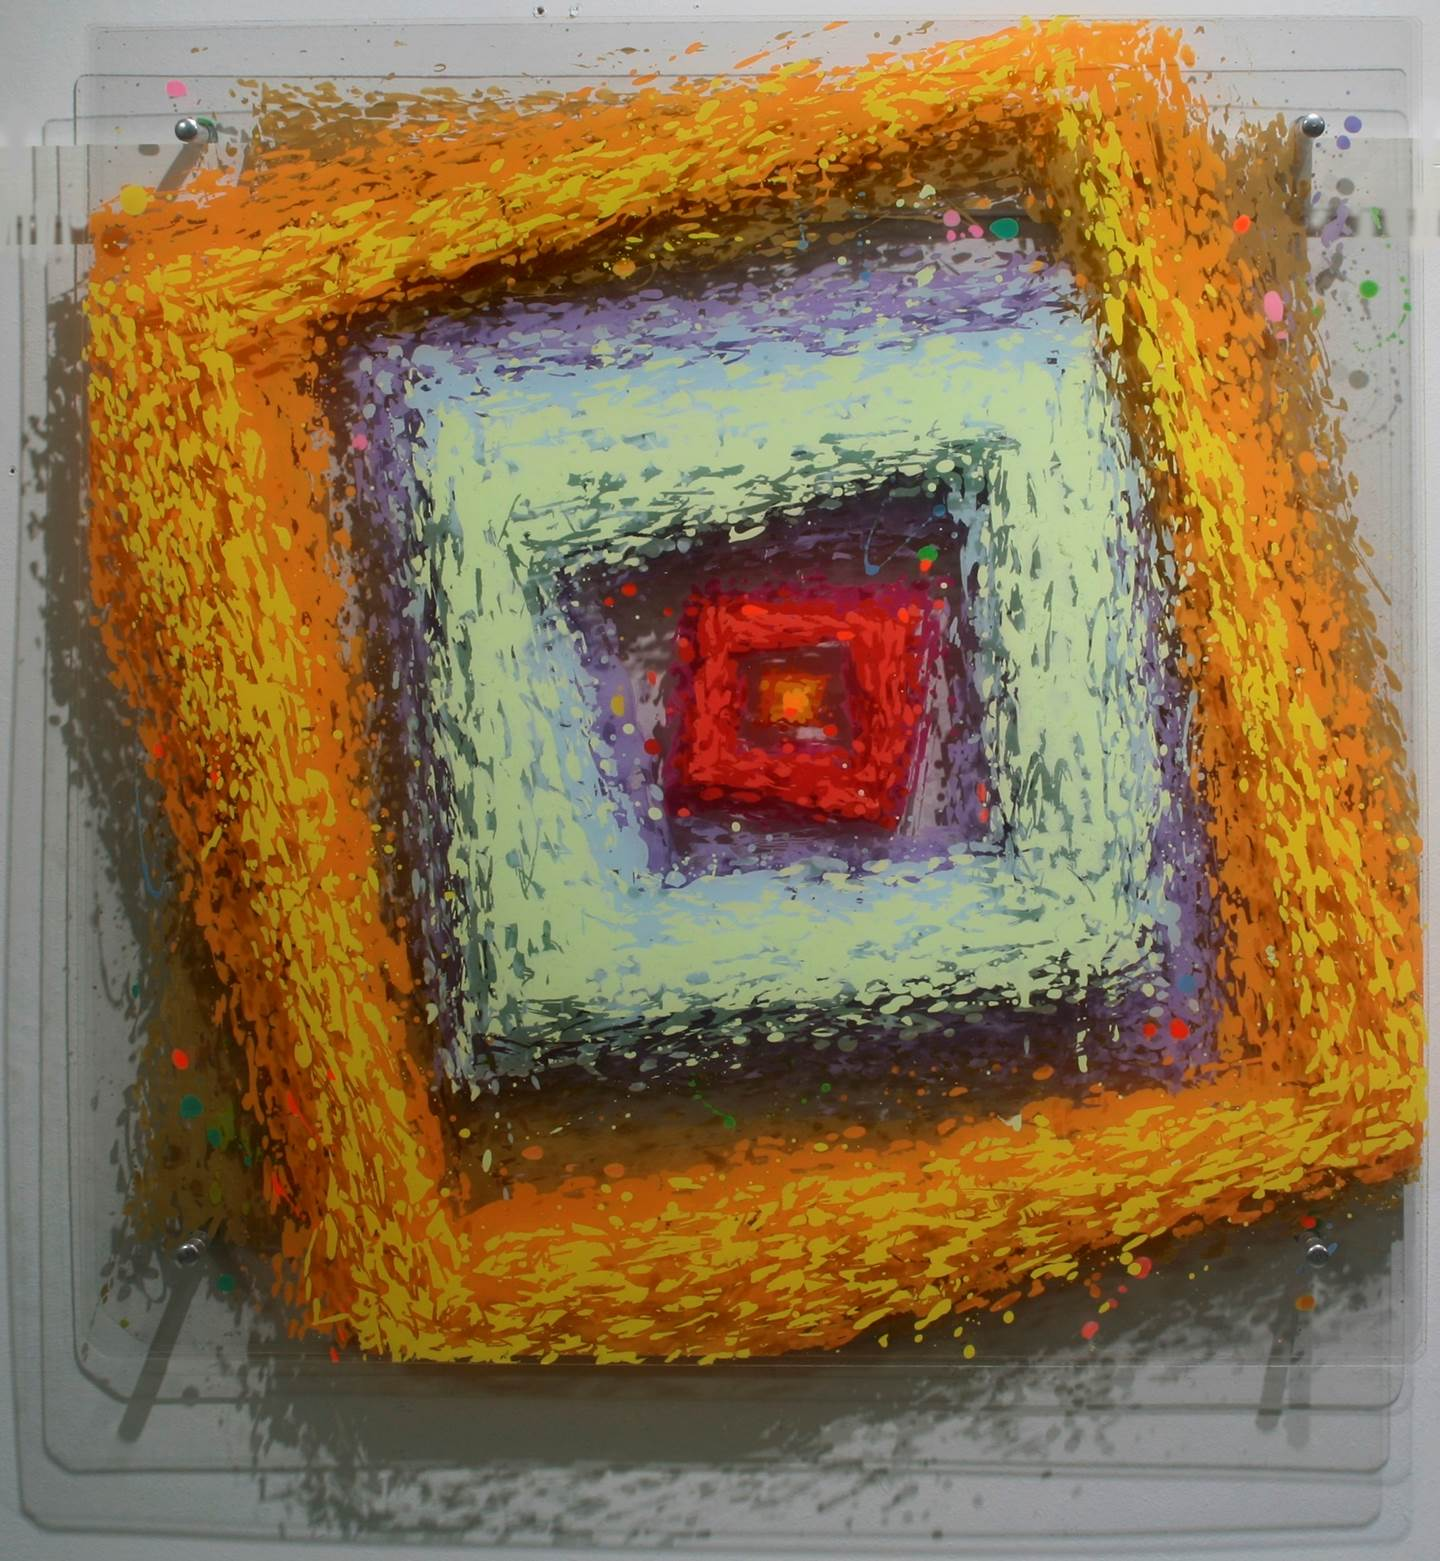 Square Flower #4, original Abstract Acrylic Sculpture by Yury  Darashkevich